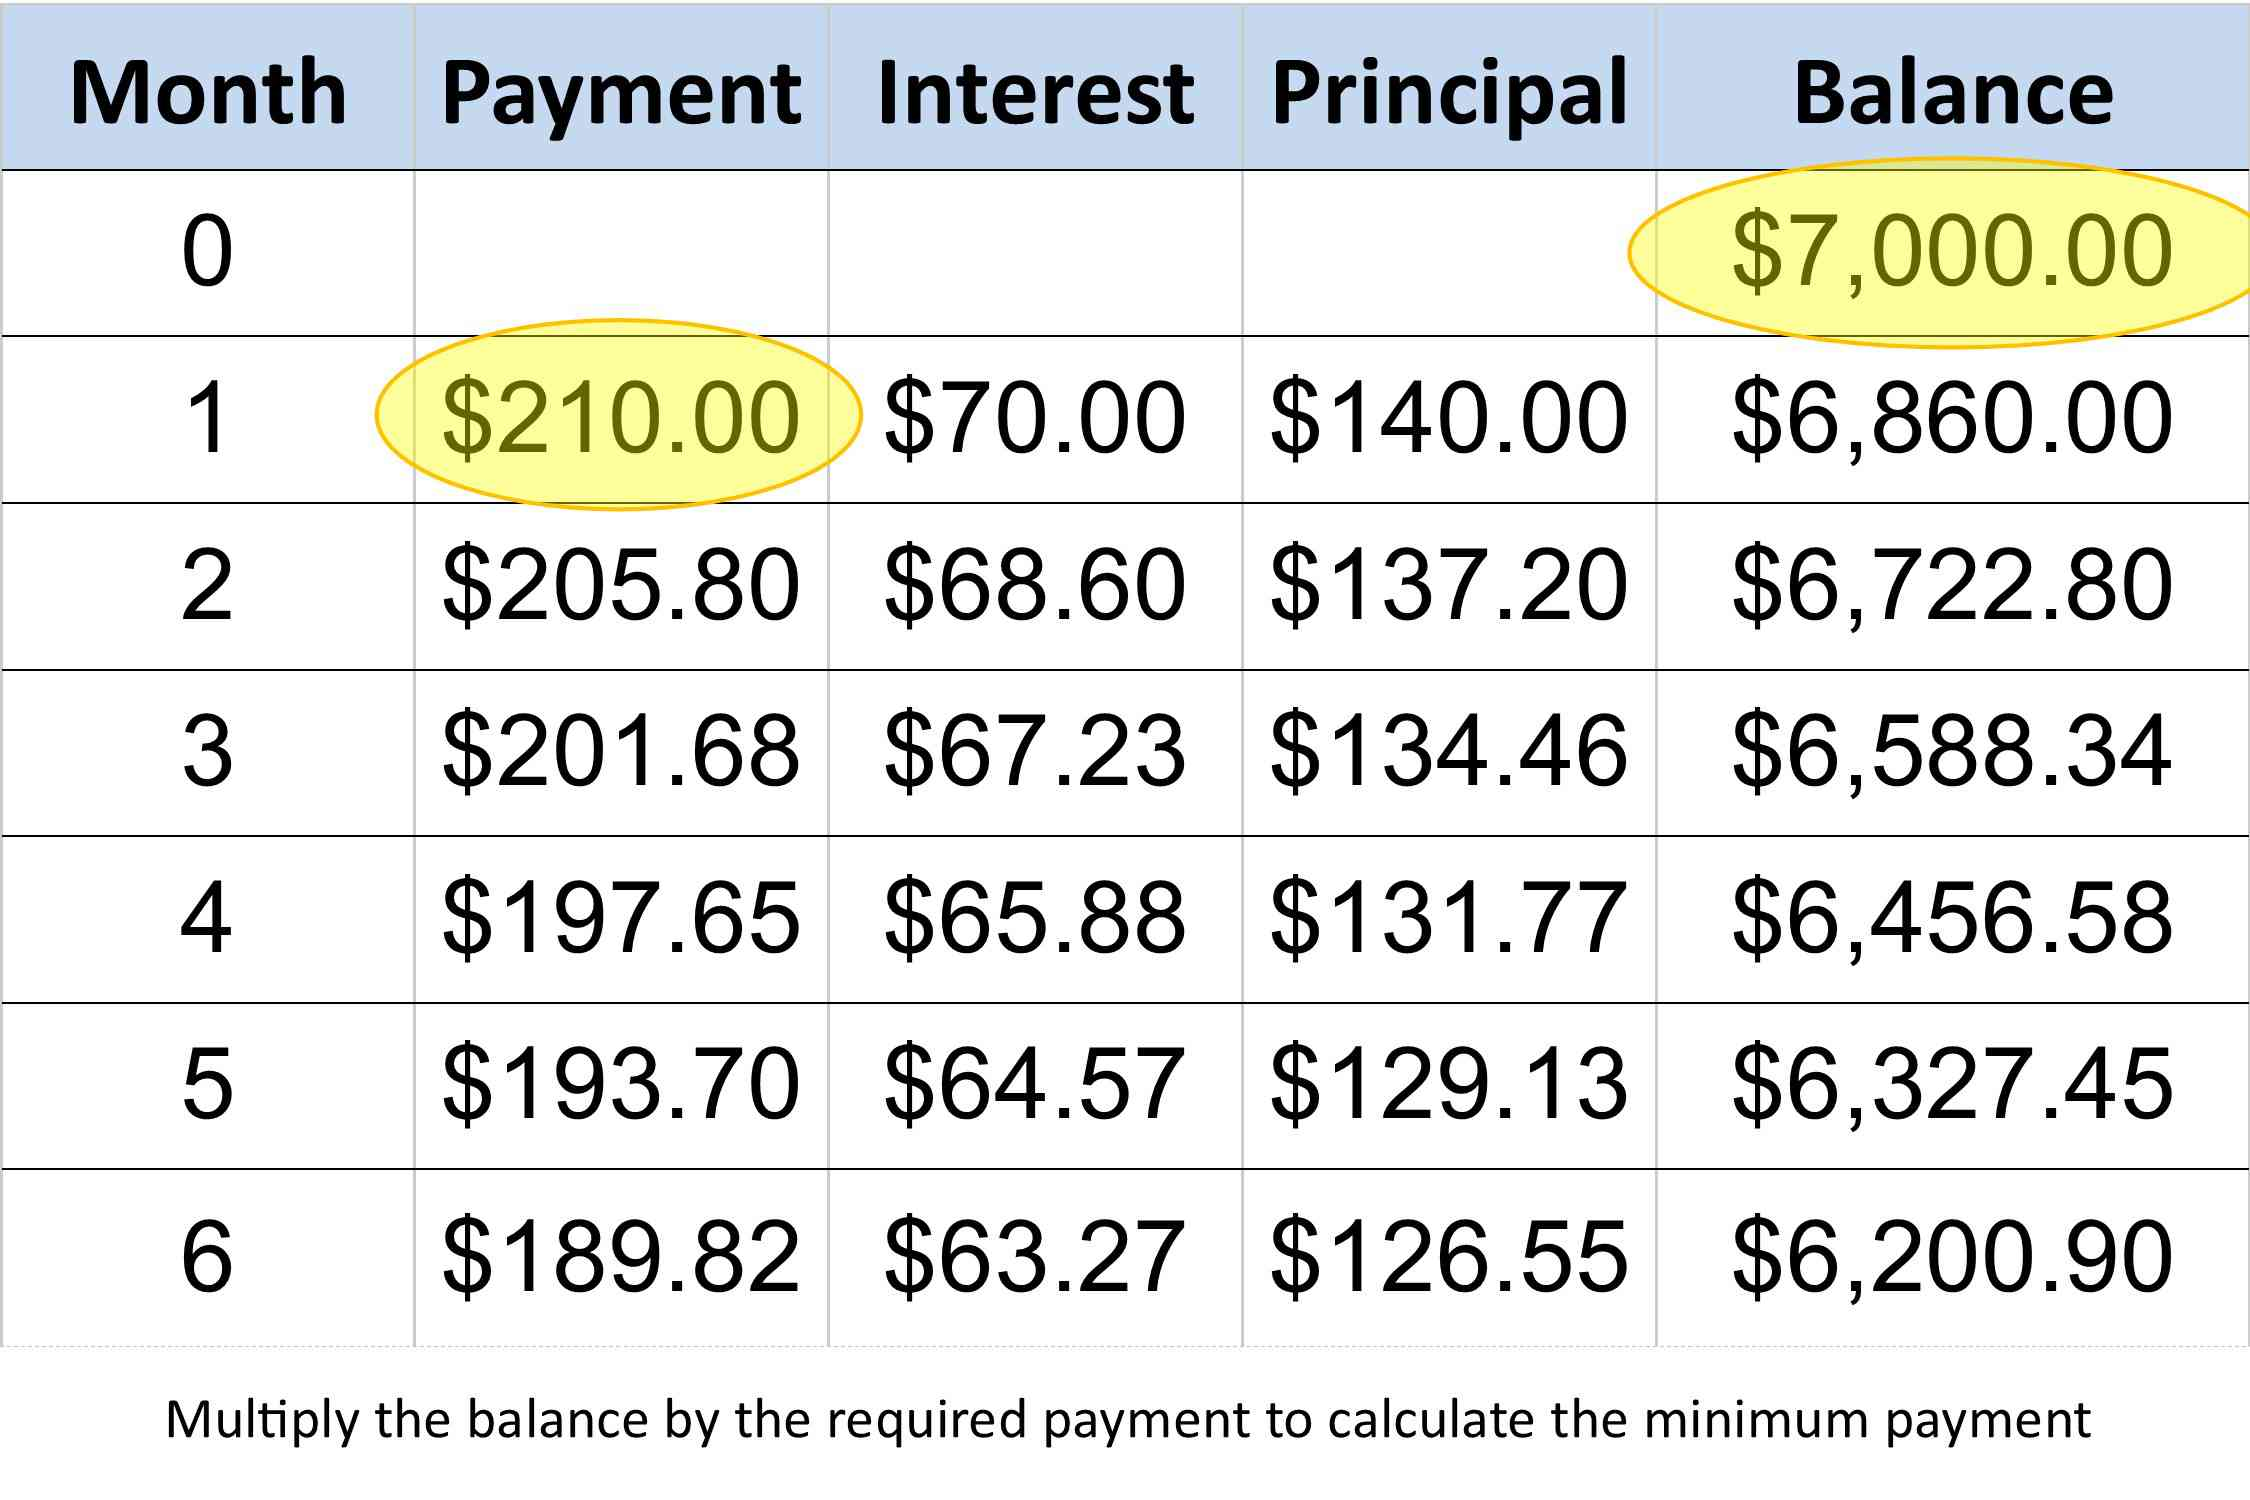 A spreadsheet highlighting the minimum payment for an outstanding credit card balance